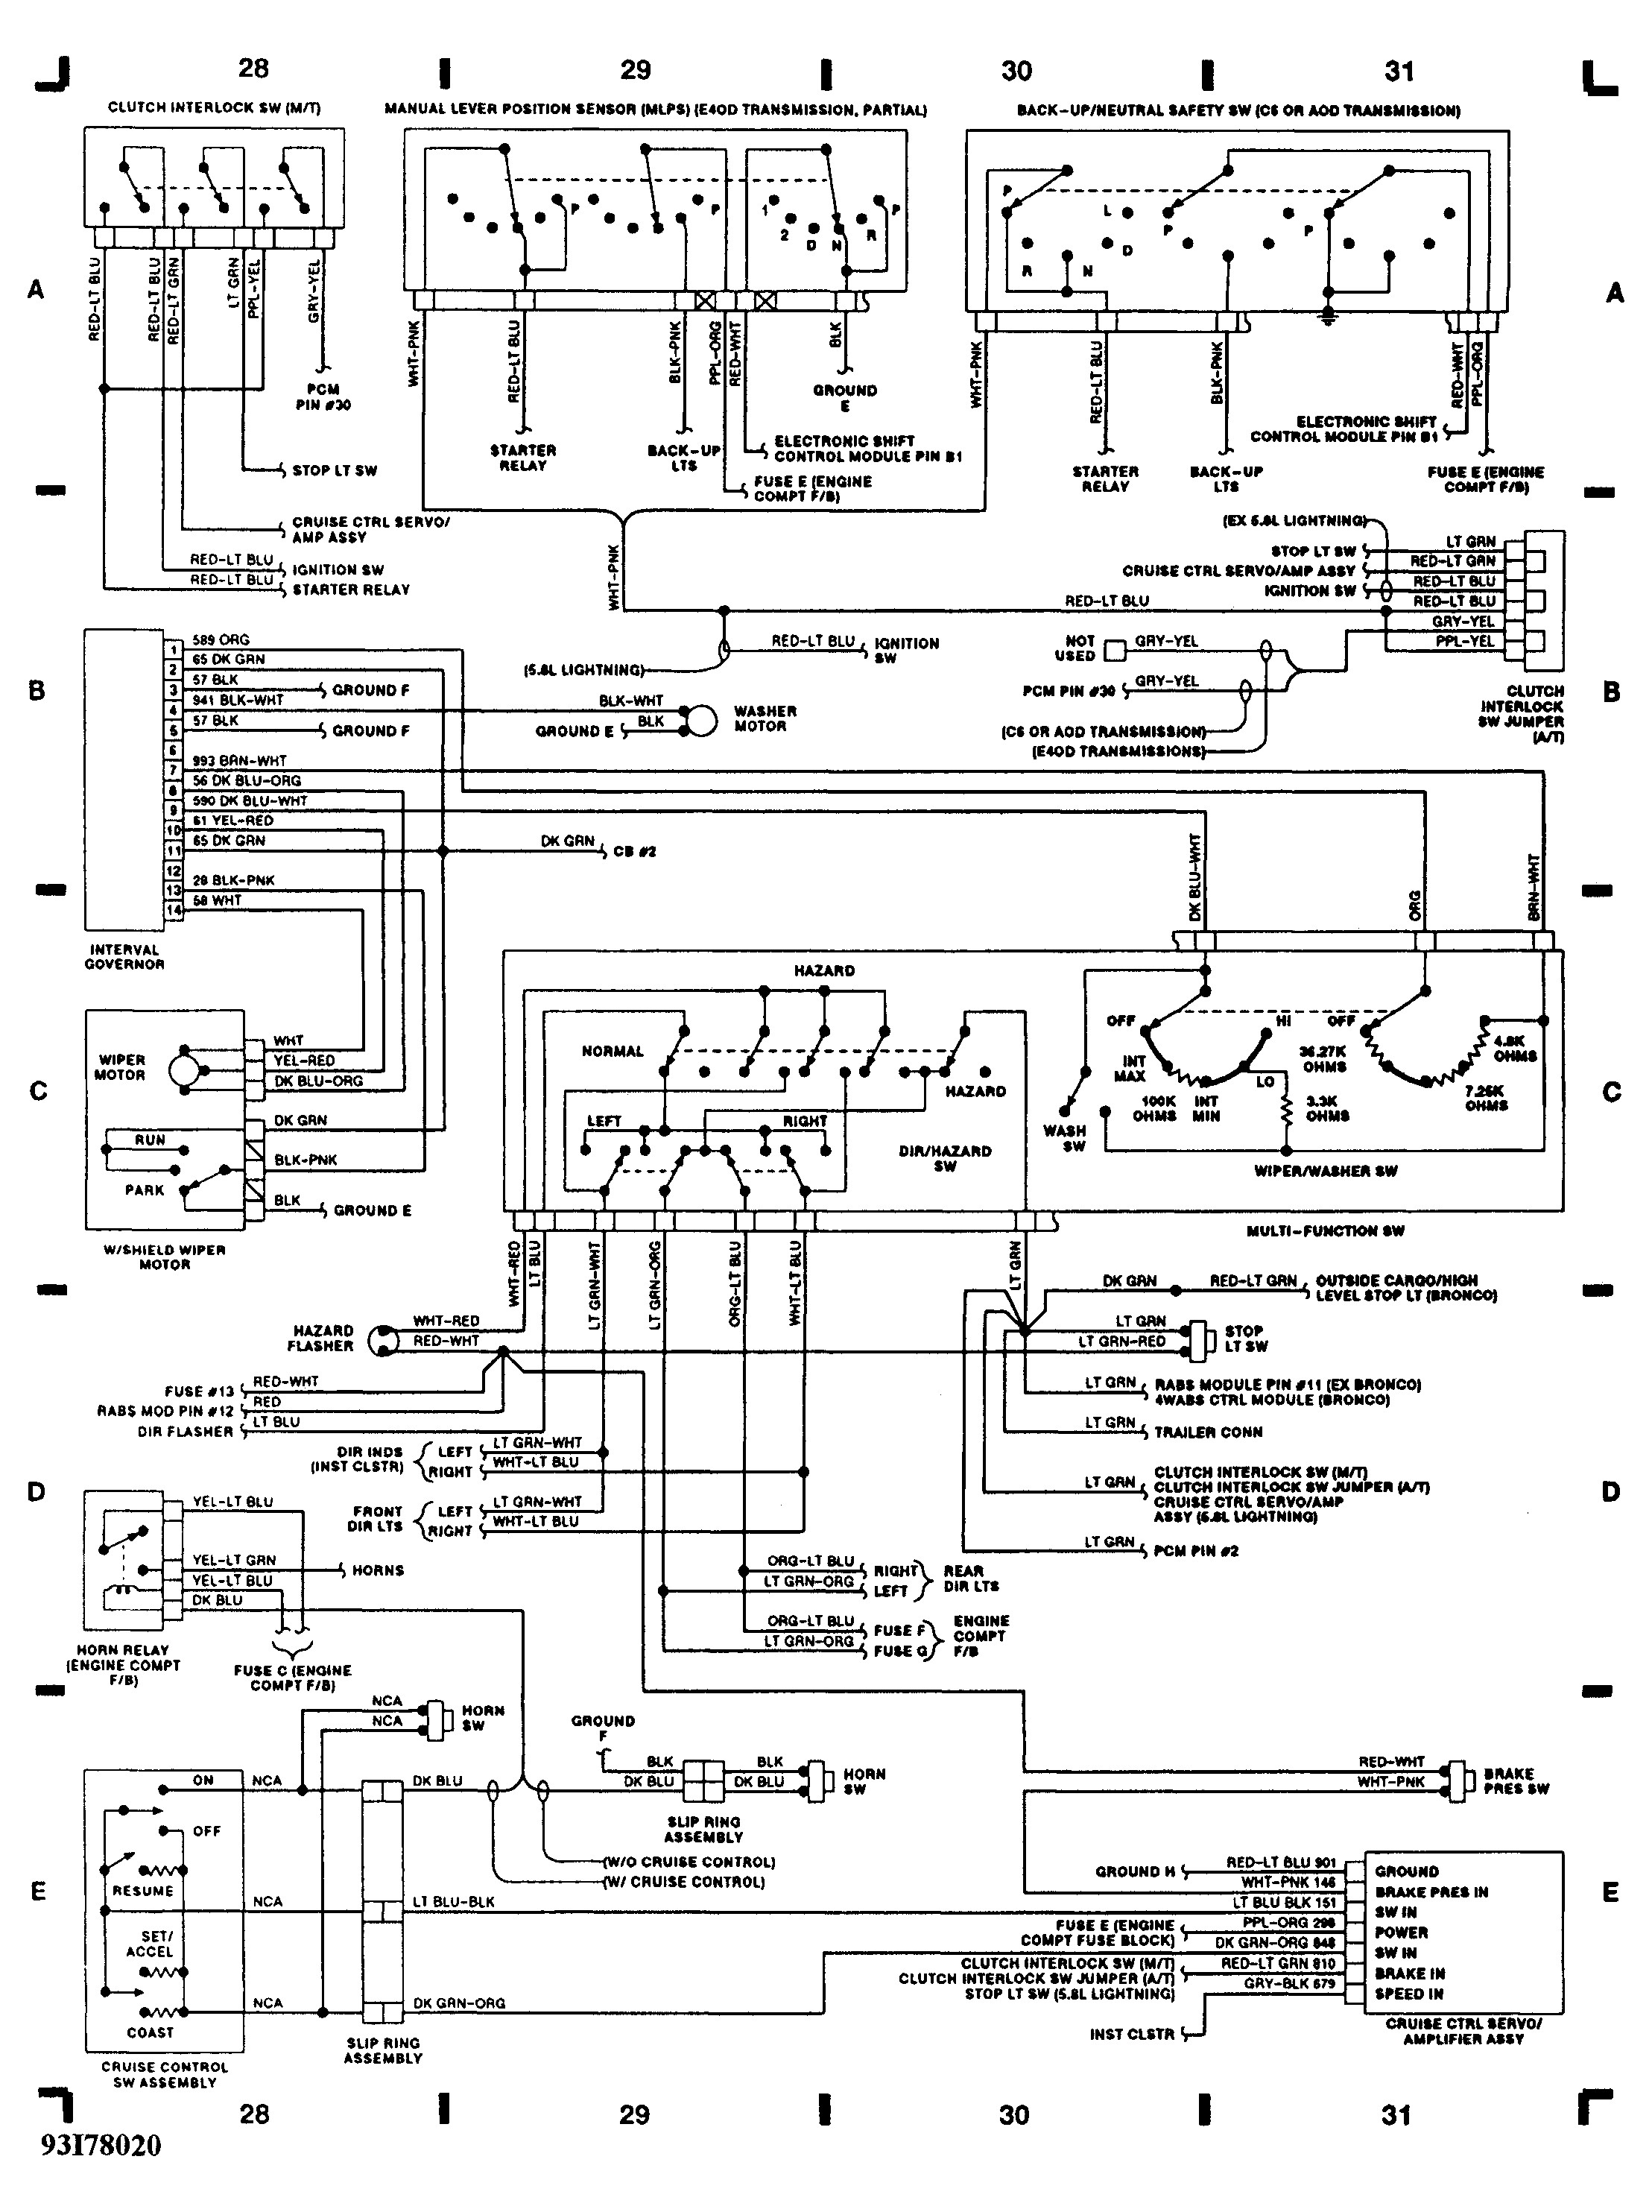 ford 6 0 powerstroke ficm wiring extended wiring diagram 2005 duramax ficm wiring harness ficm wiring harness [ 2217 x 2968 Pixel ]